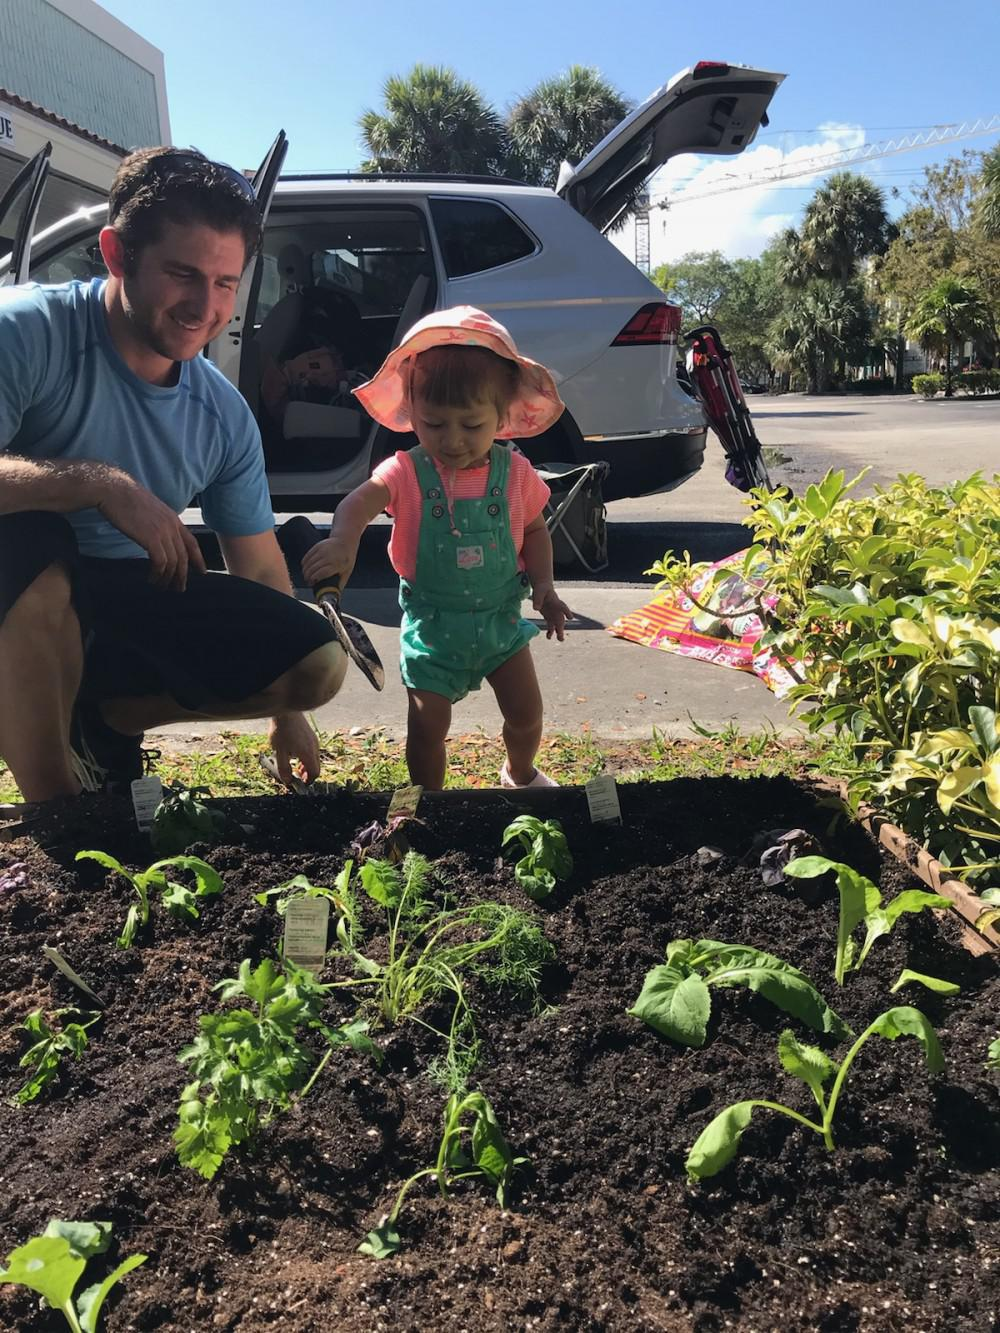 Dr. Elan and his daughter Amelia planting a garden